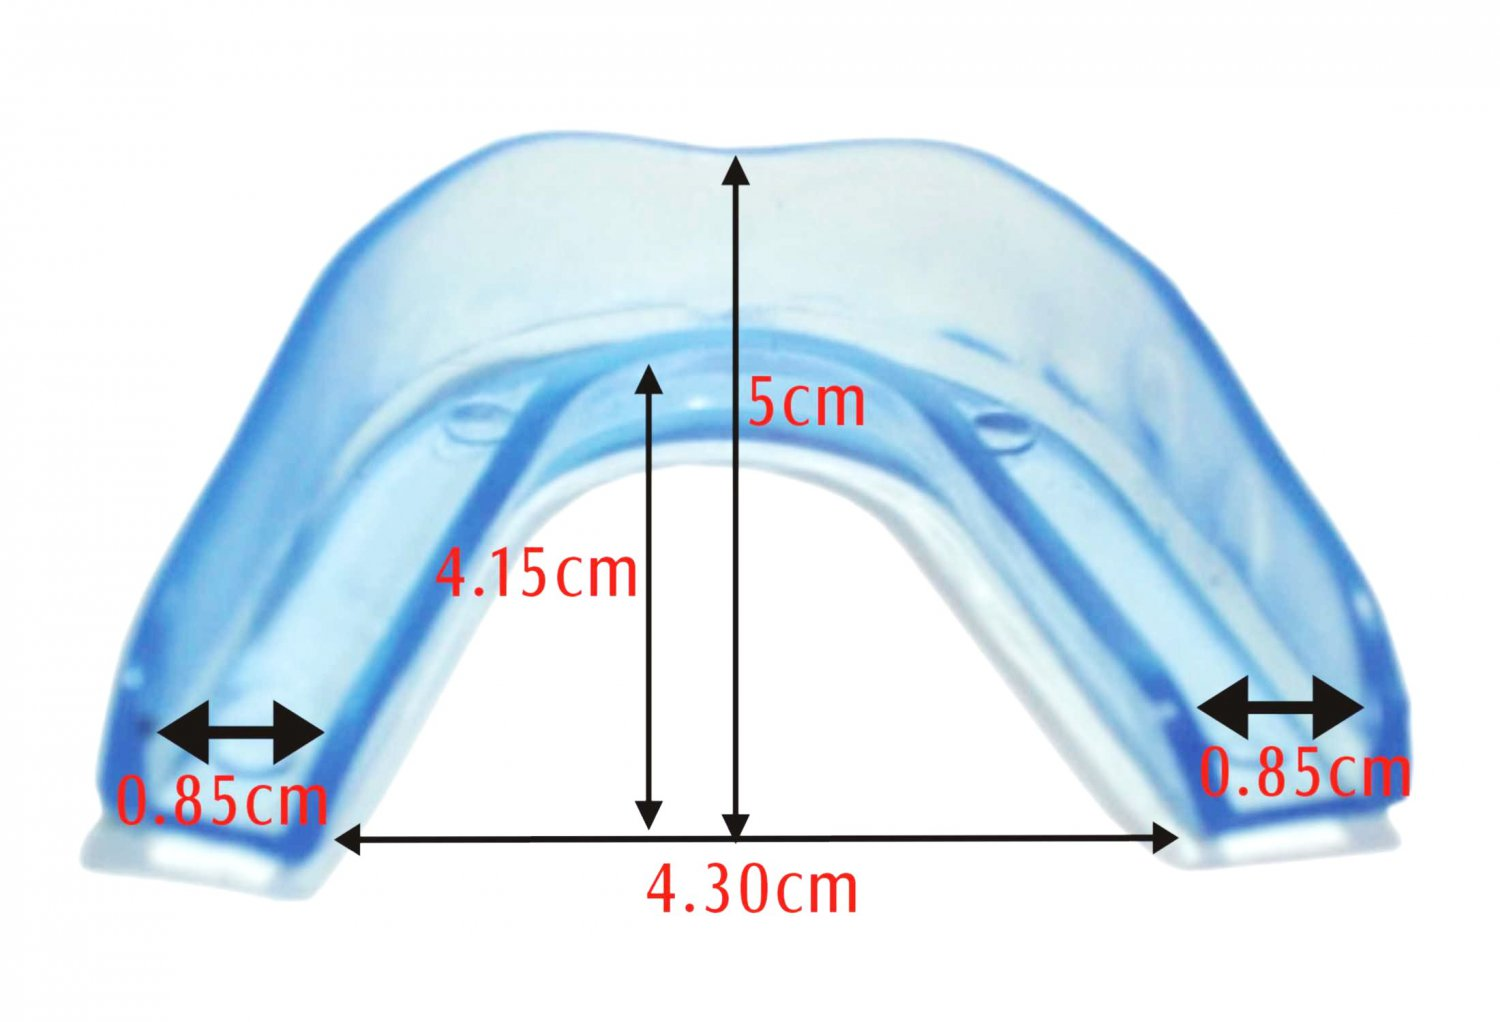 Night Teeth Grinding Mouth Guards Stop Bruxism Dental Protect Snoring TMJ Sleep Aid New